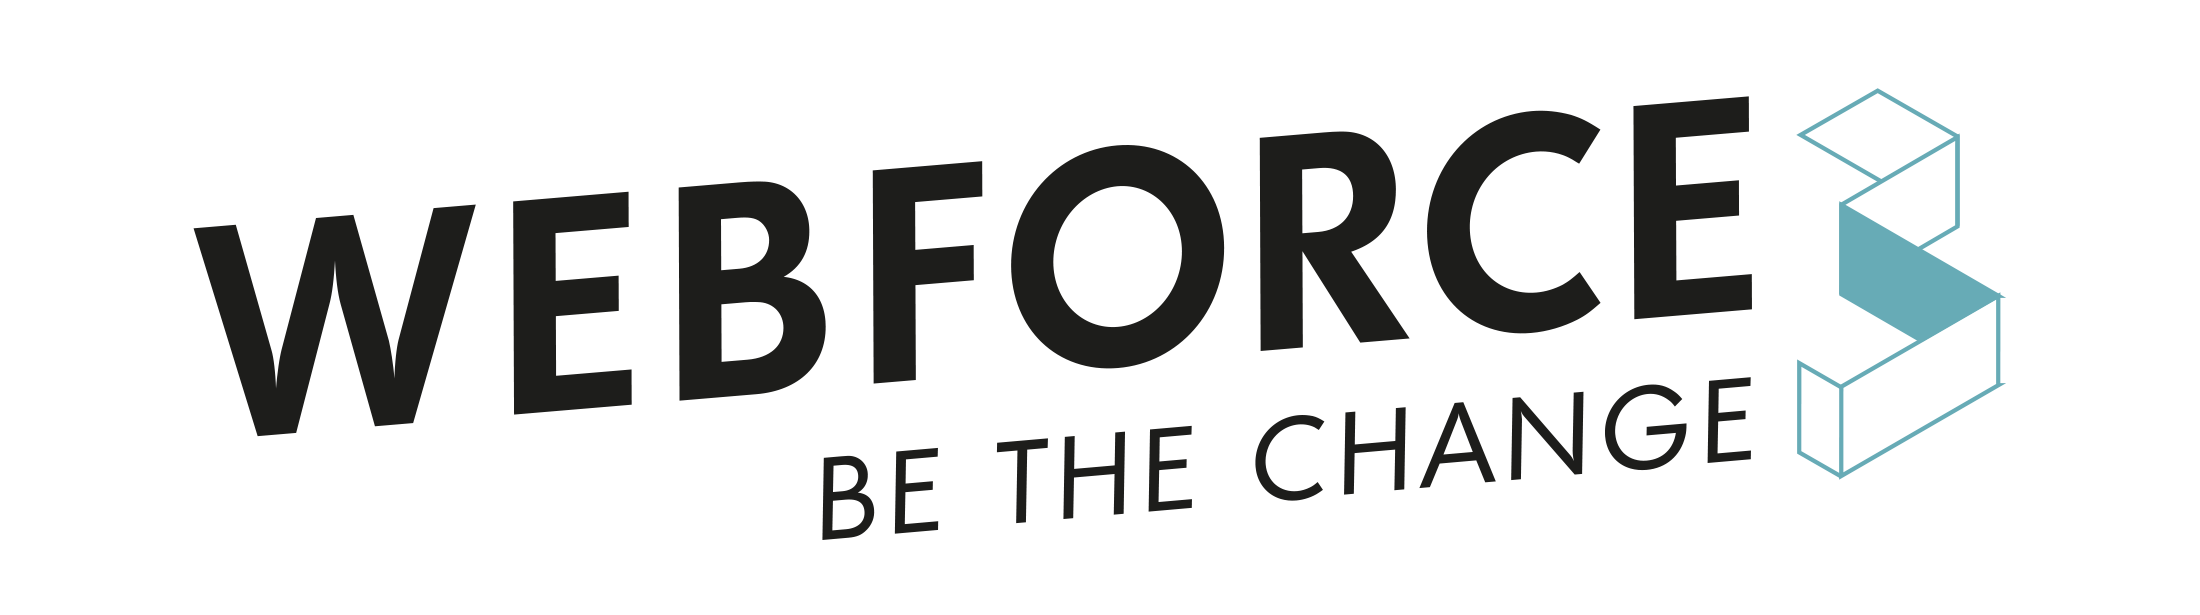 Web Force 3 logo